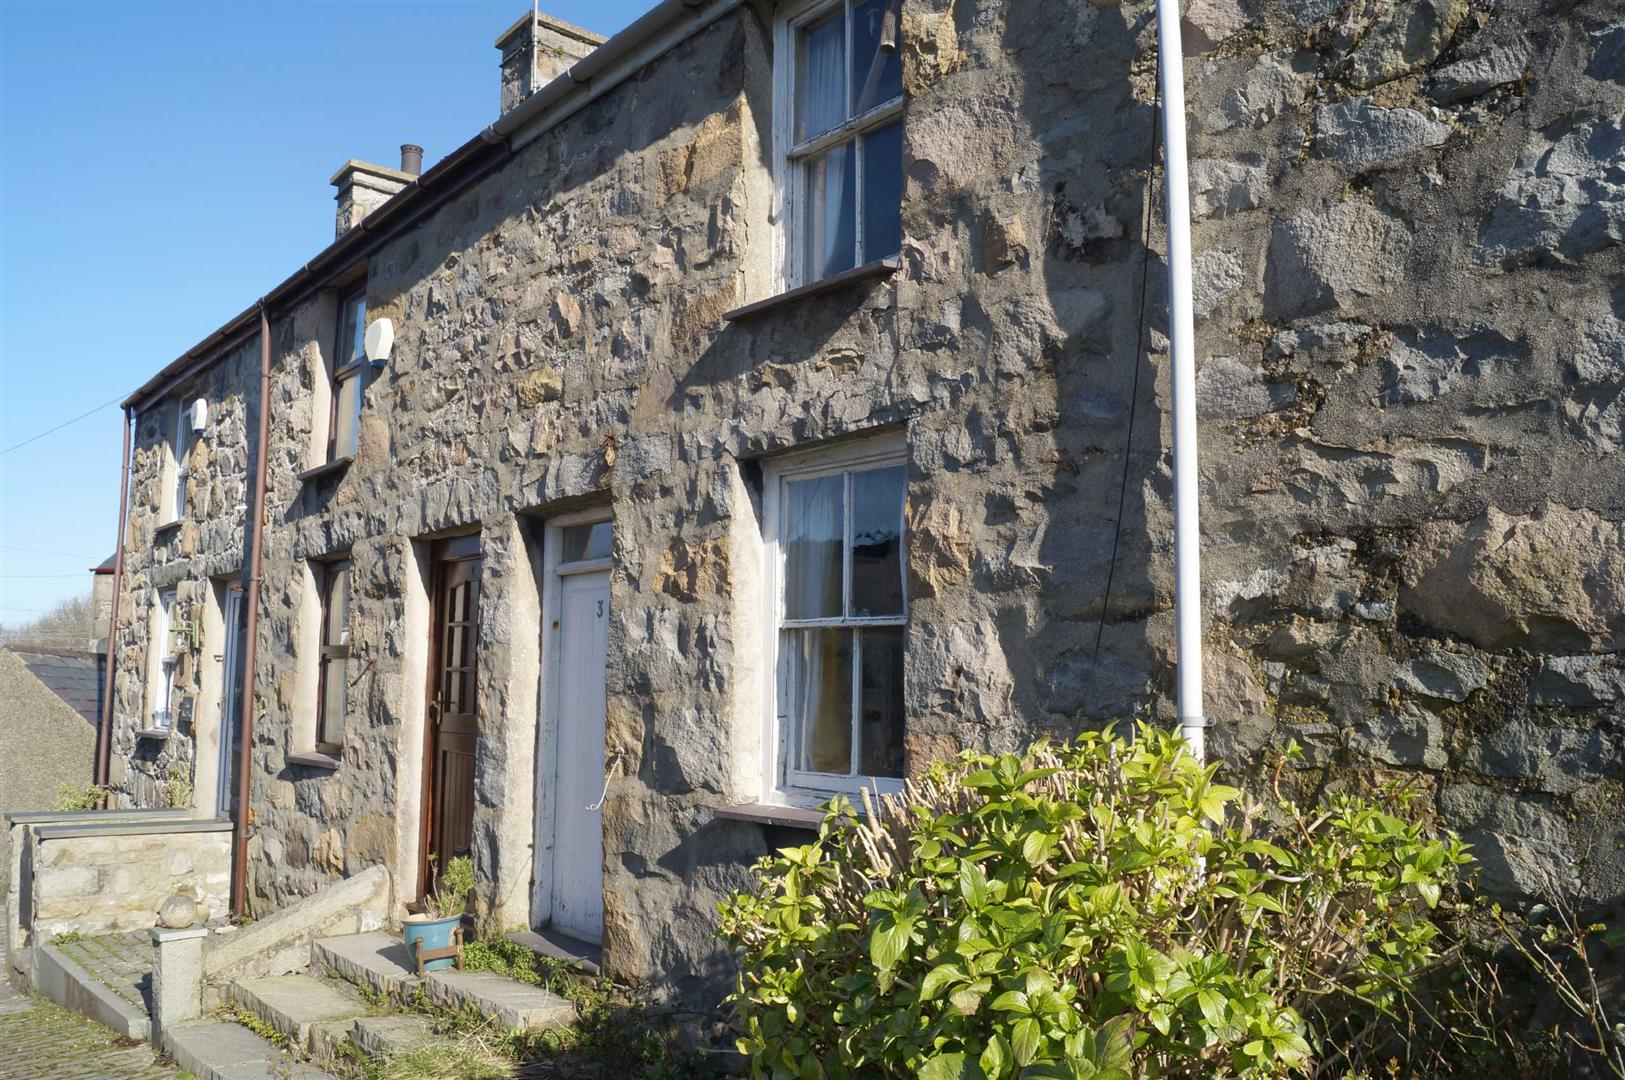 New Street, Trefor - £65,000/Reduced to